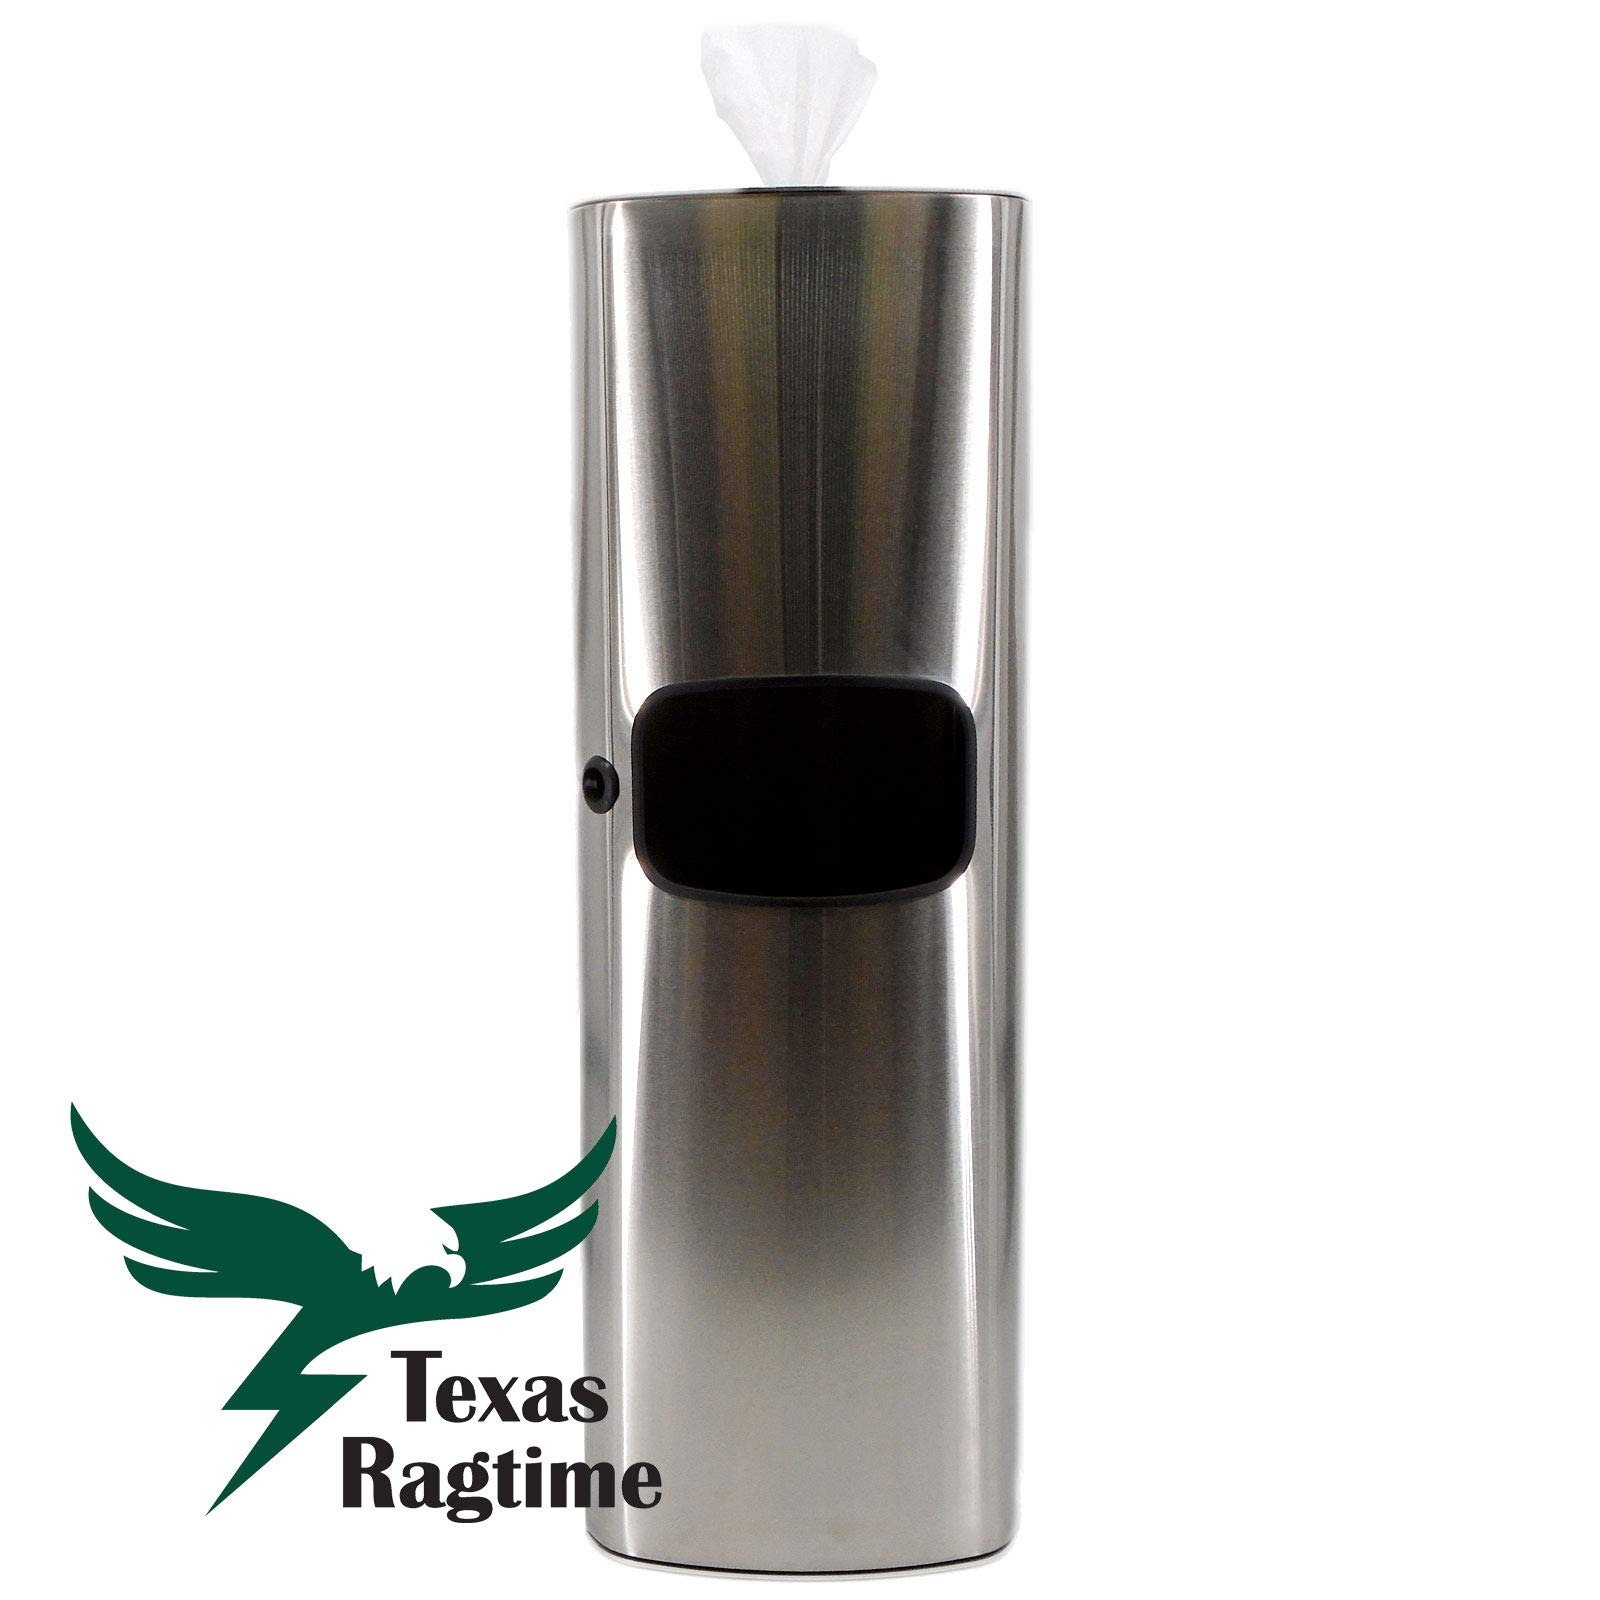 TEXAS RAGTIME Eagle Wipes New Gym Wipes Dispenser and Trash Can Set for Gyms, Offices, Hospitals, Schools, Restrooms Bundle with Eagle Wet Wipes Natural Gym Wipes 4 Rolls 5000 Sheets 1250/roll by TEXAS RAGTIME (Image #8)